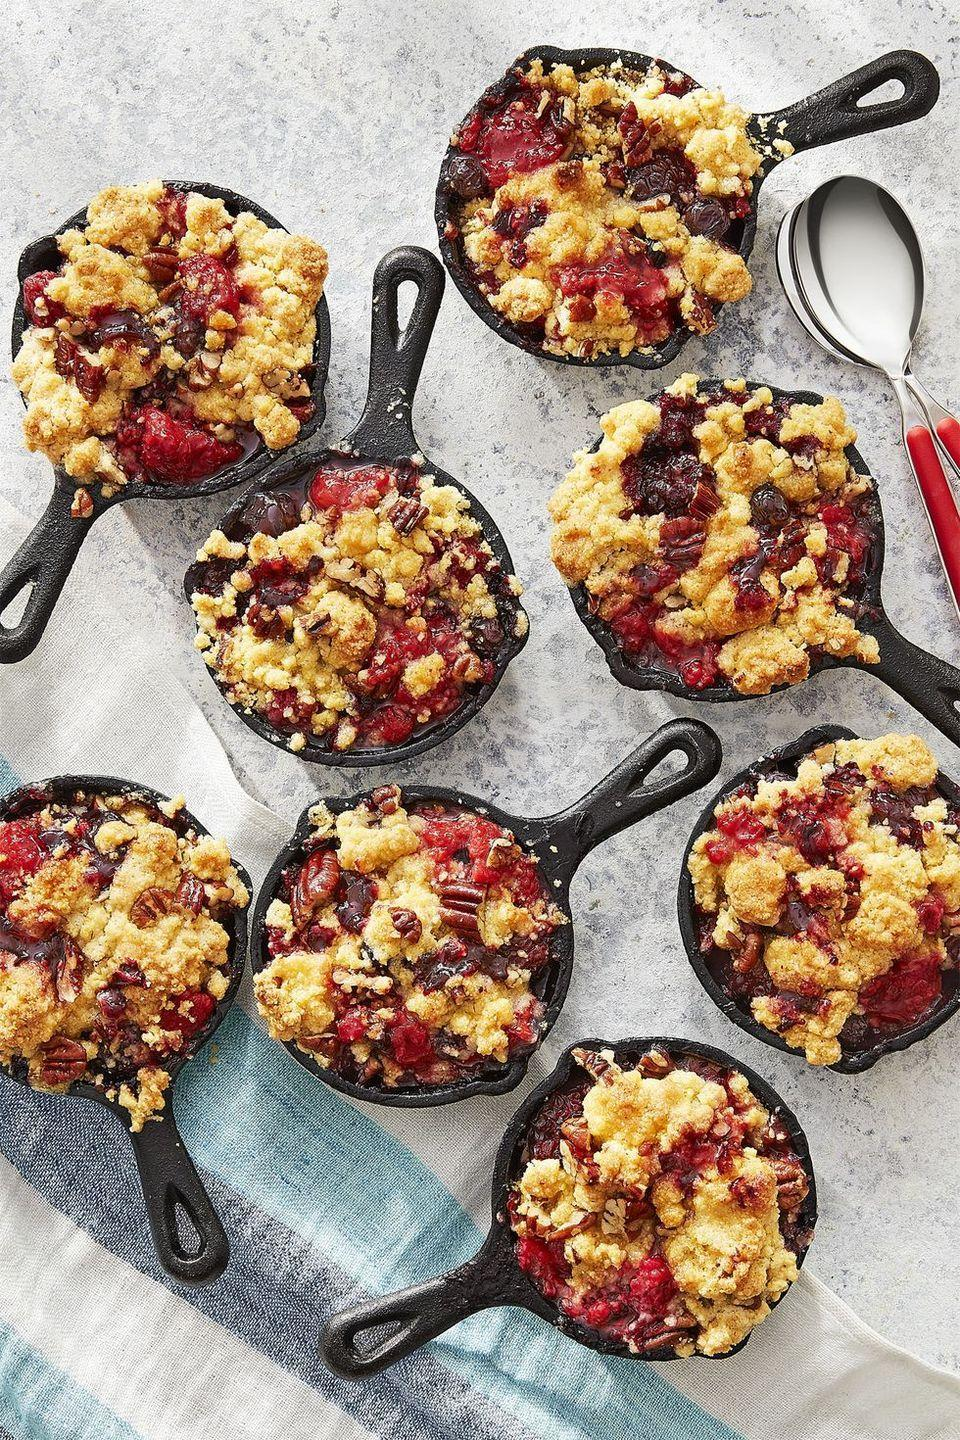 """<p>Everyone will love digging into personal-sized cobblers bursting with fresh berries and topped with chopped pecans.</p><p><strong><a href=""""https://www.countryliving.com/food-drinks/recipes/a43072/jiffy-mixed-berry-cornmeal-cobbler-recipe/"""" rel=""""nofollow noopener"""" target=""""_blank"""" data-ylk=""""slk:Get the recipe"""" class=""""link rapid-noclick-resp"""">Get the recipe</a>.</strong> </p>"""